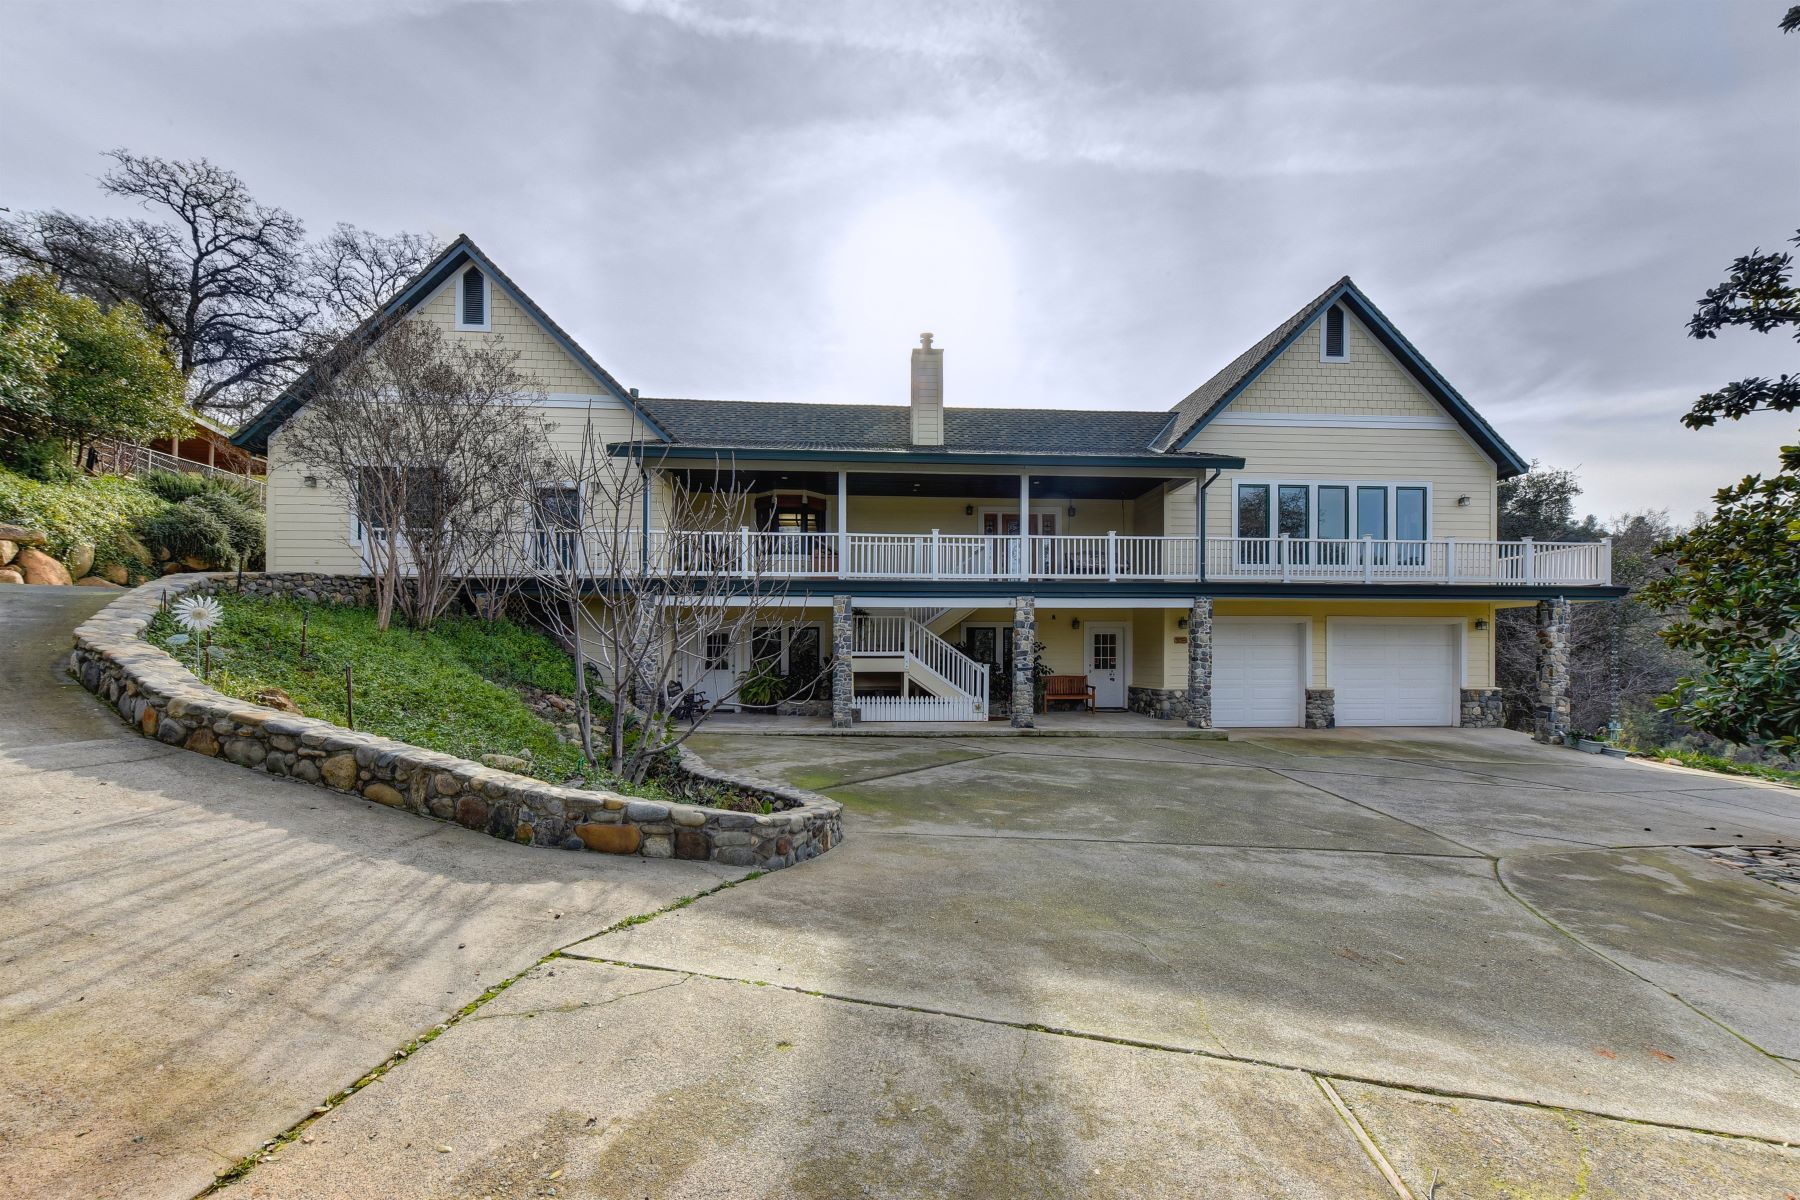 Single Family Home for Active at Custom Home with 1000 sq ft of South Fork American River Frontage and 33 acres 1212 Serenity Ln Coloma, California 95613 United States